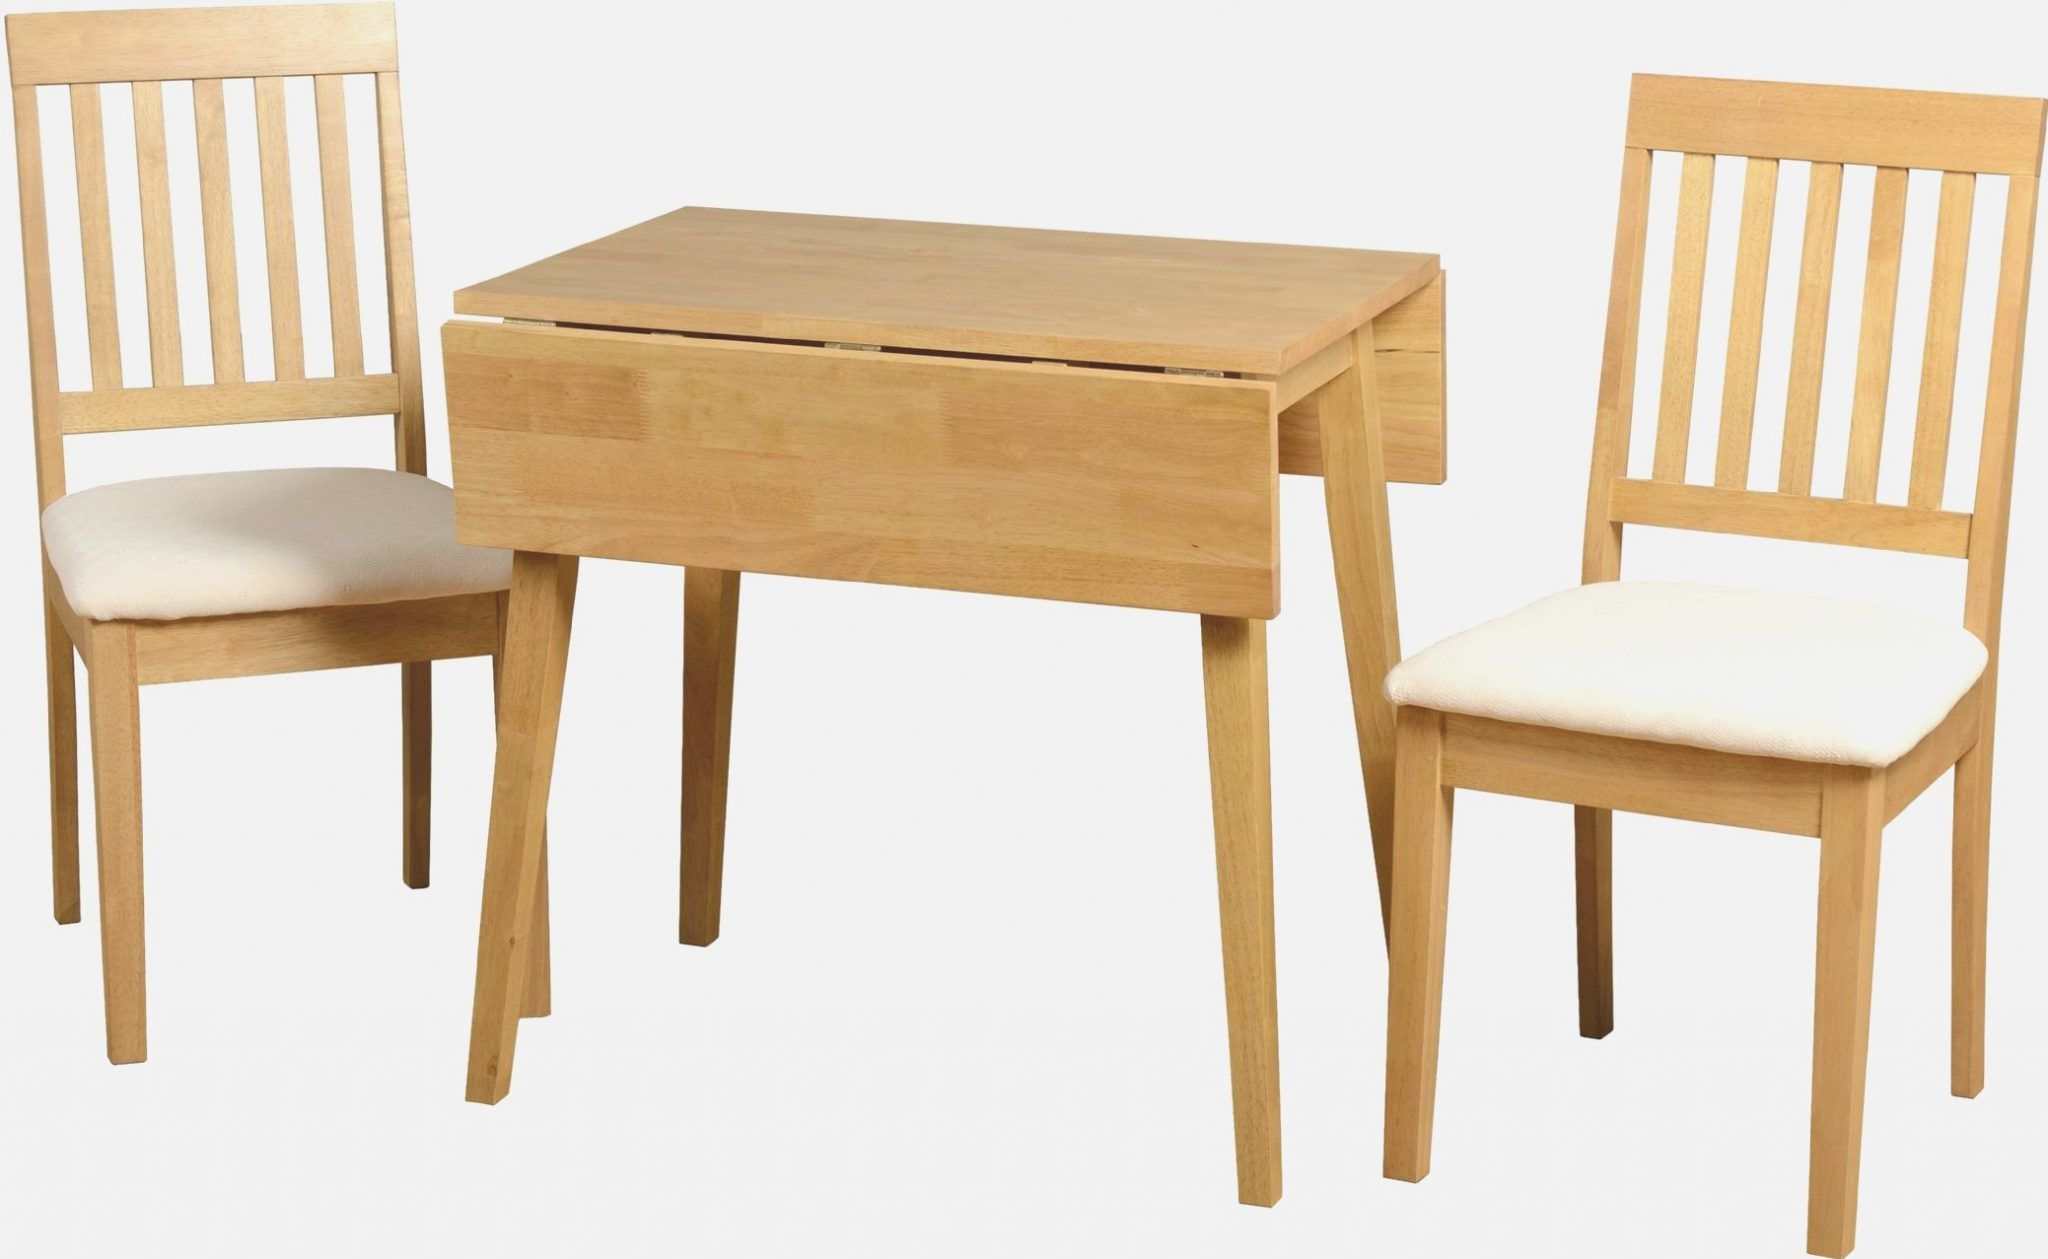 Small Kitchen Table And Chairs Canada Resin Outdoor At Walmart Brisbane